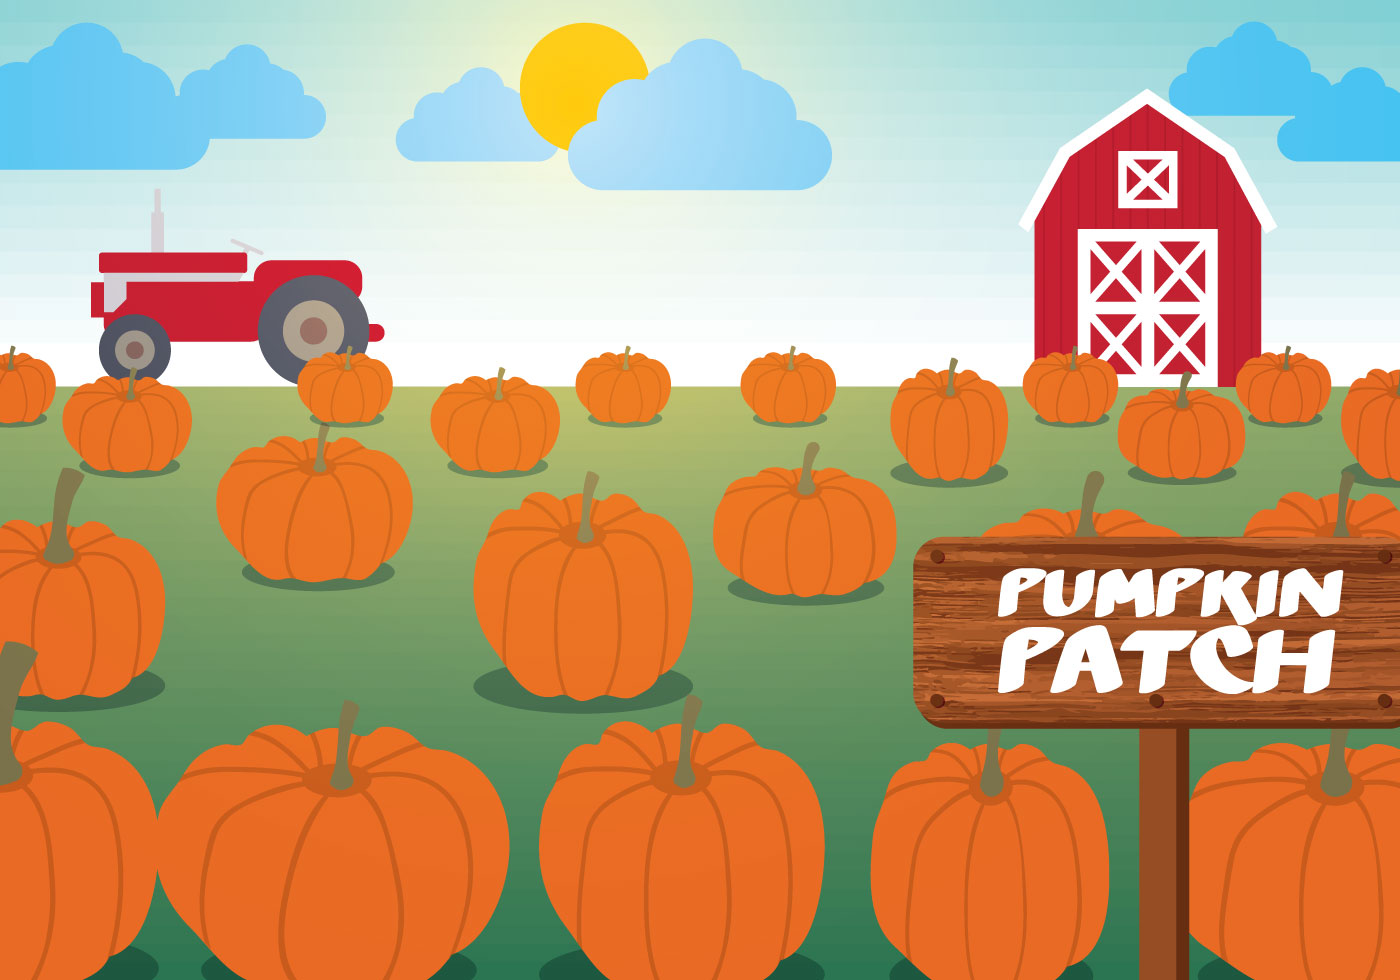 pumpkin patch vector download free vector art  stock free clip art butterfly border free clipart butterflies and clouds